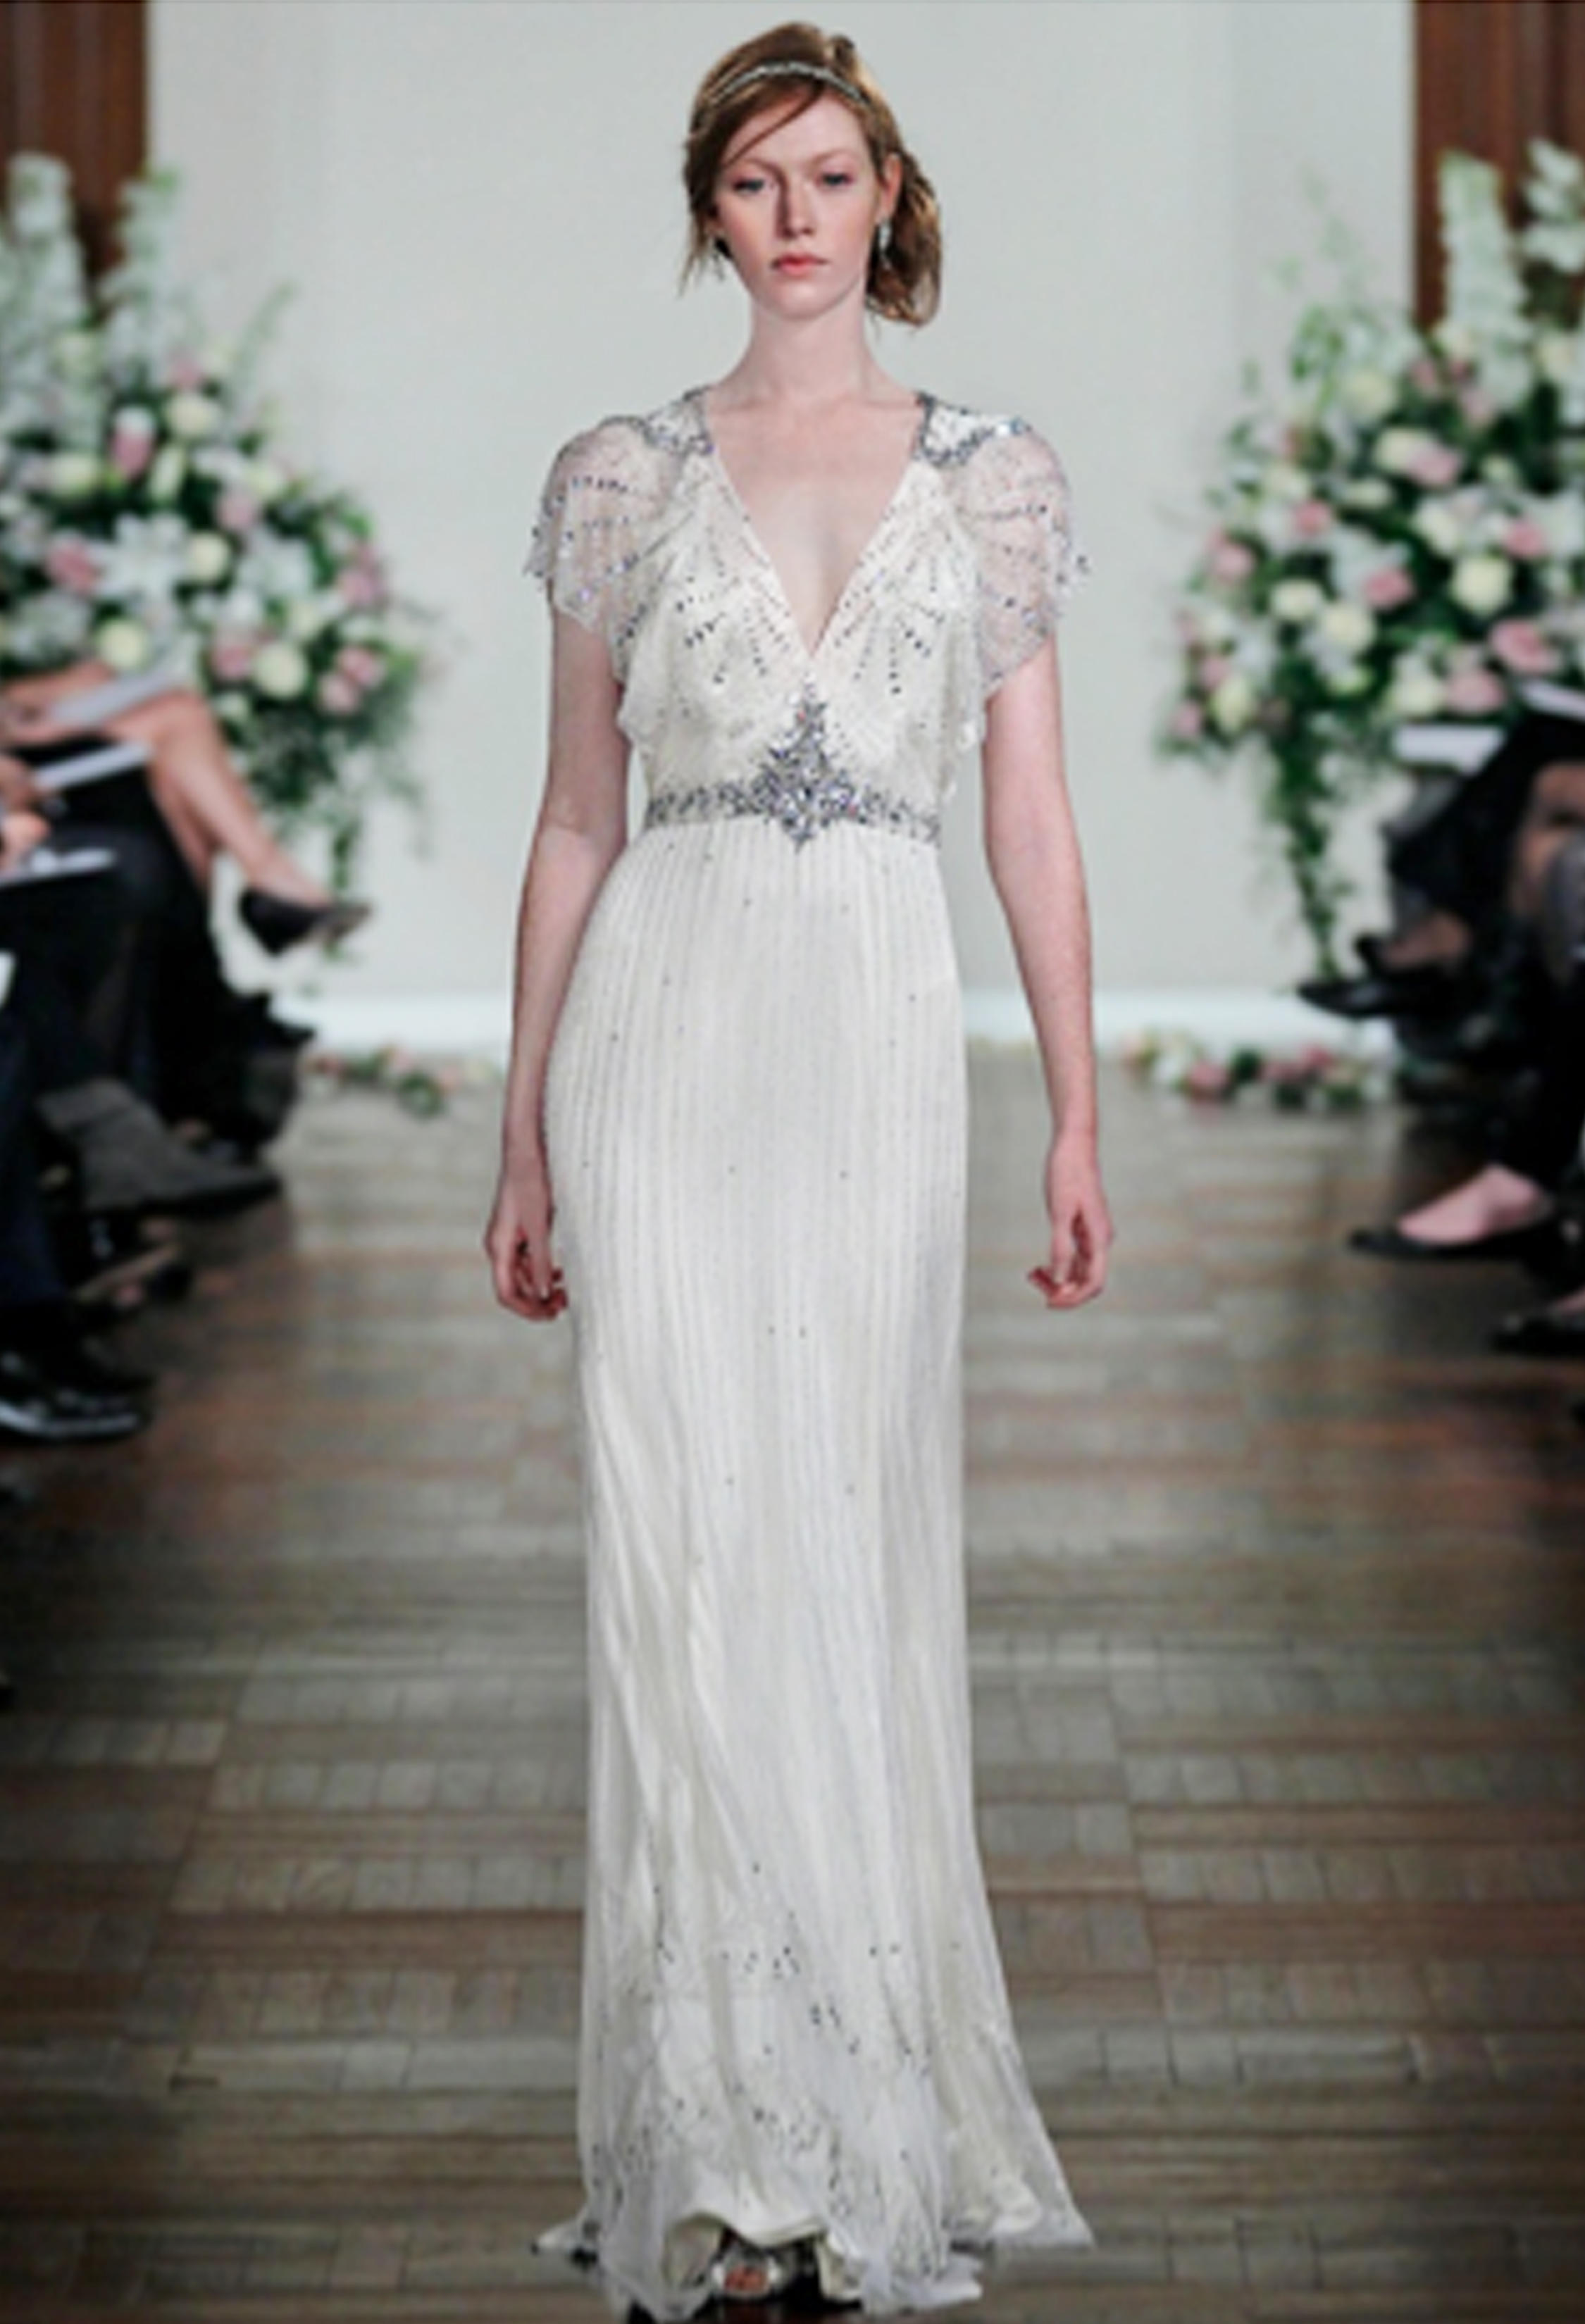 Packham jenny gorgeous wedding dresses collection